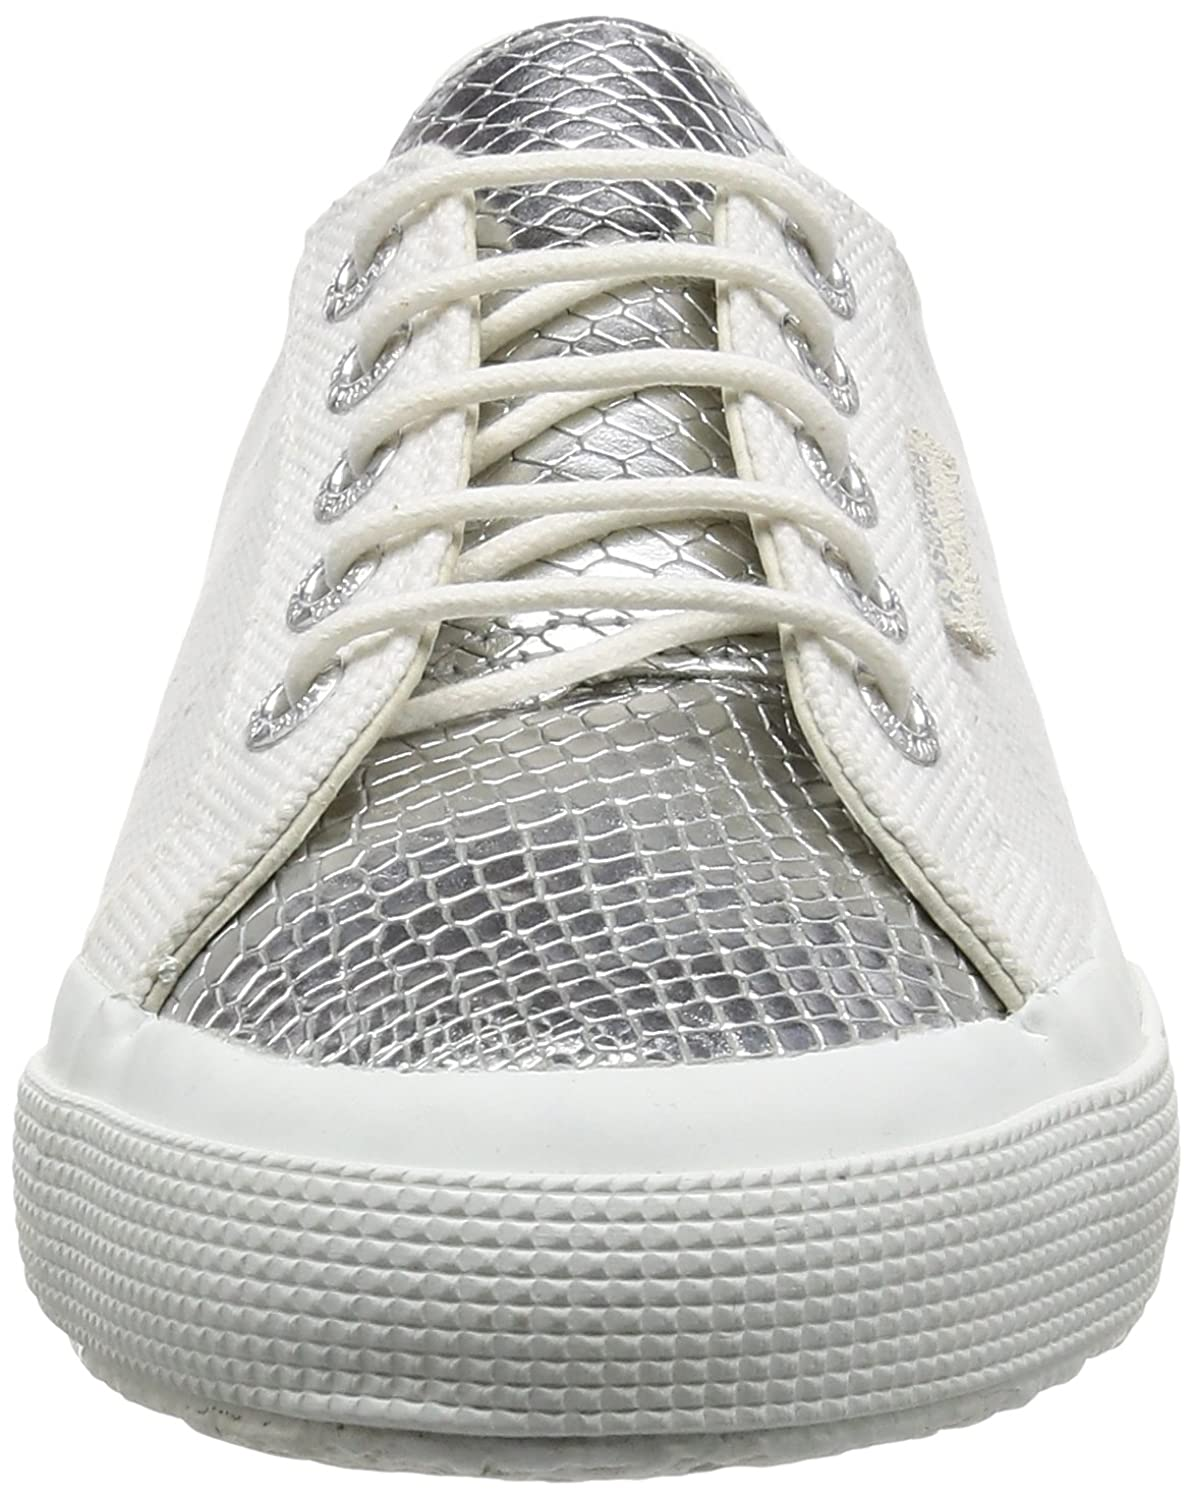 Superga 2750 Cotleasnakeu - Zapatillas Unisex Adulto: Amazon.es: Zapatos y  complementos